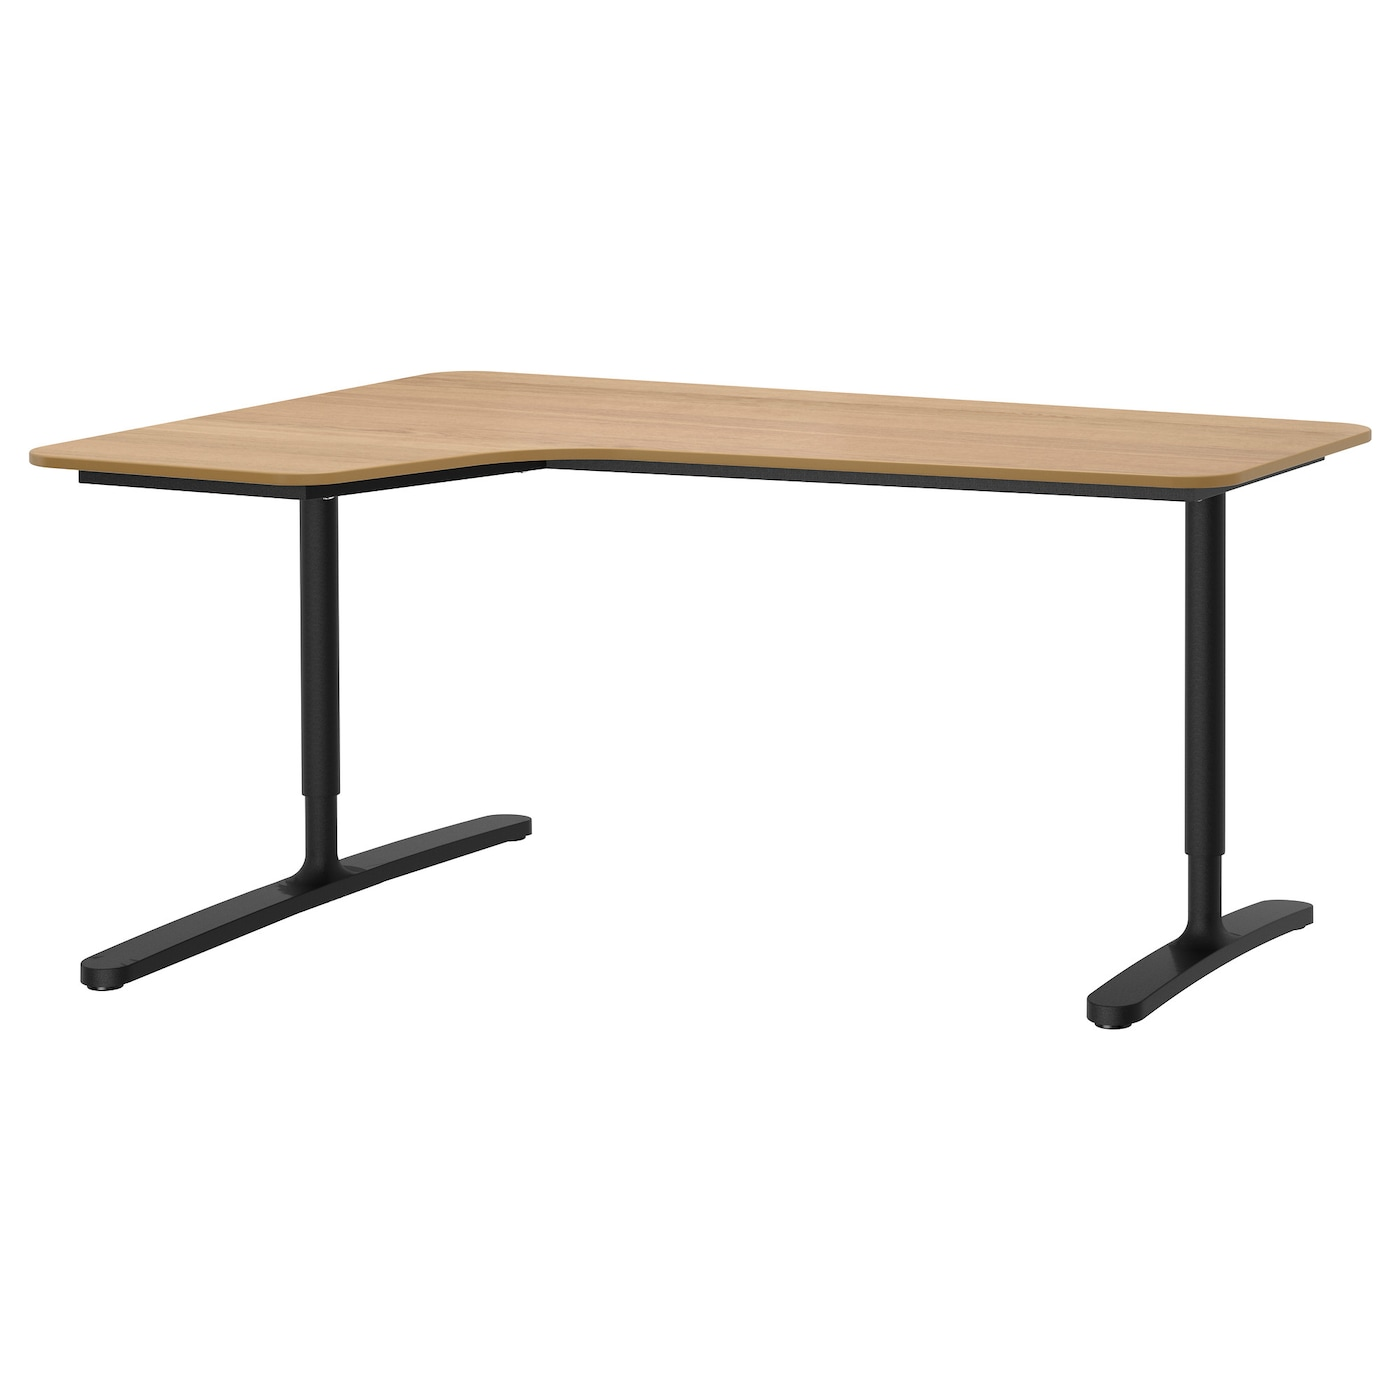 IKEA BEKANT corner desk left 10 year guarantee. Read about the terms in the guarantee brochure.